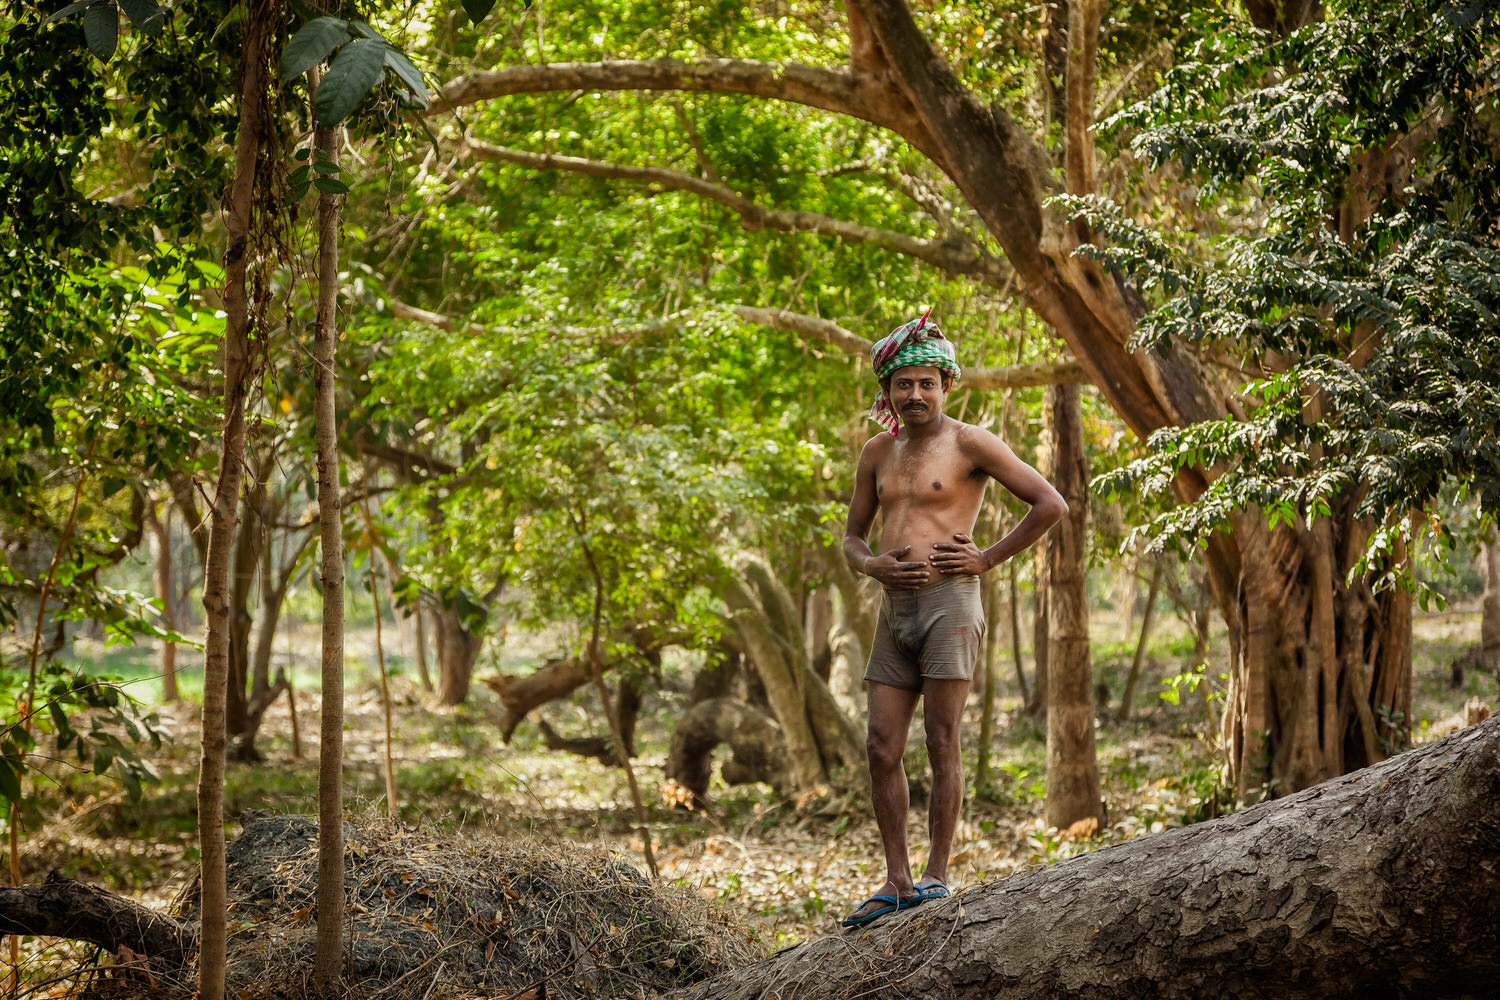 I photographed this    worker    in the grounds of the lovely    Botanical Gardens    in    Kolkata, India   . The    environmental portrait    is a wonderful way to tell a story in a single image.